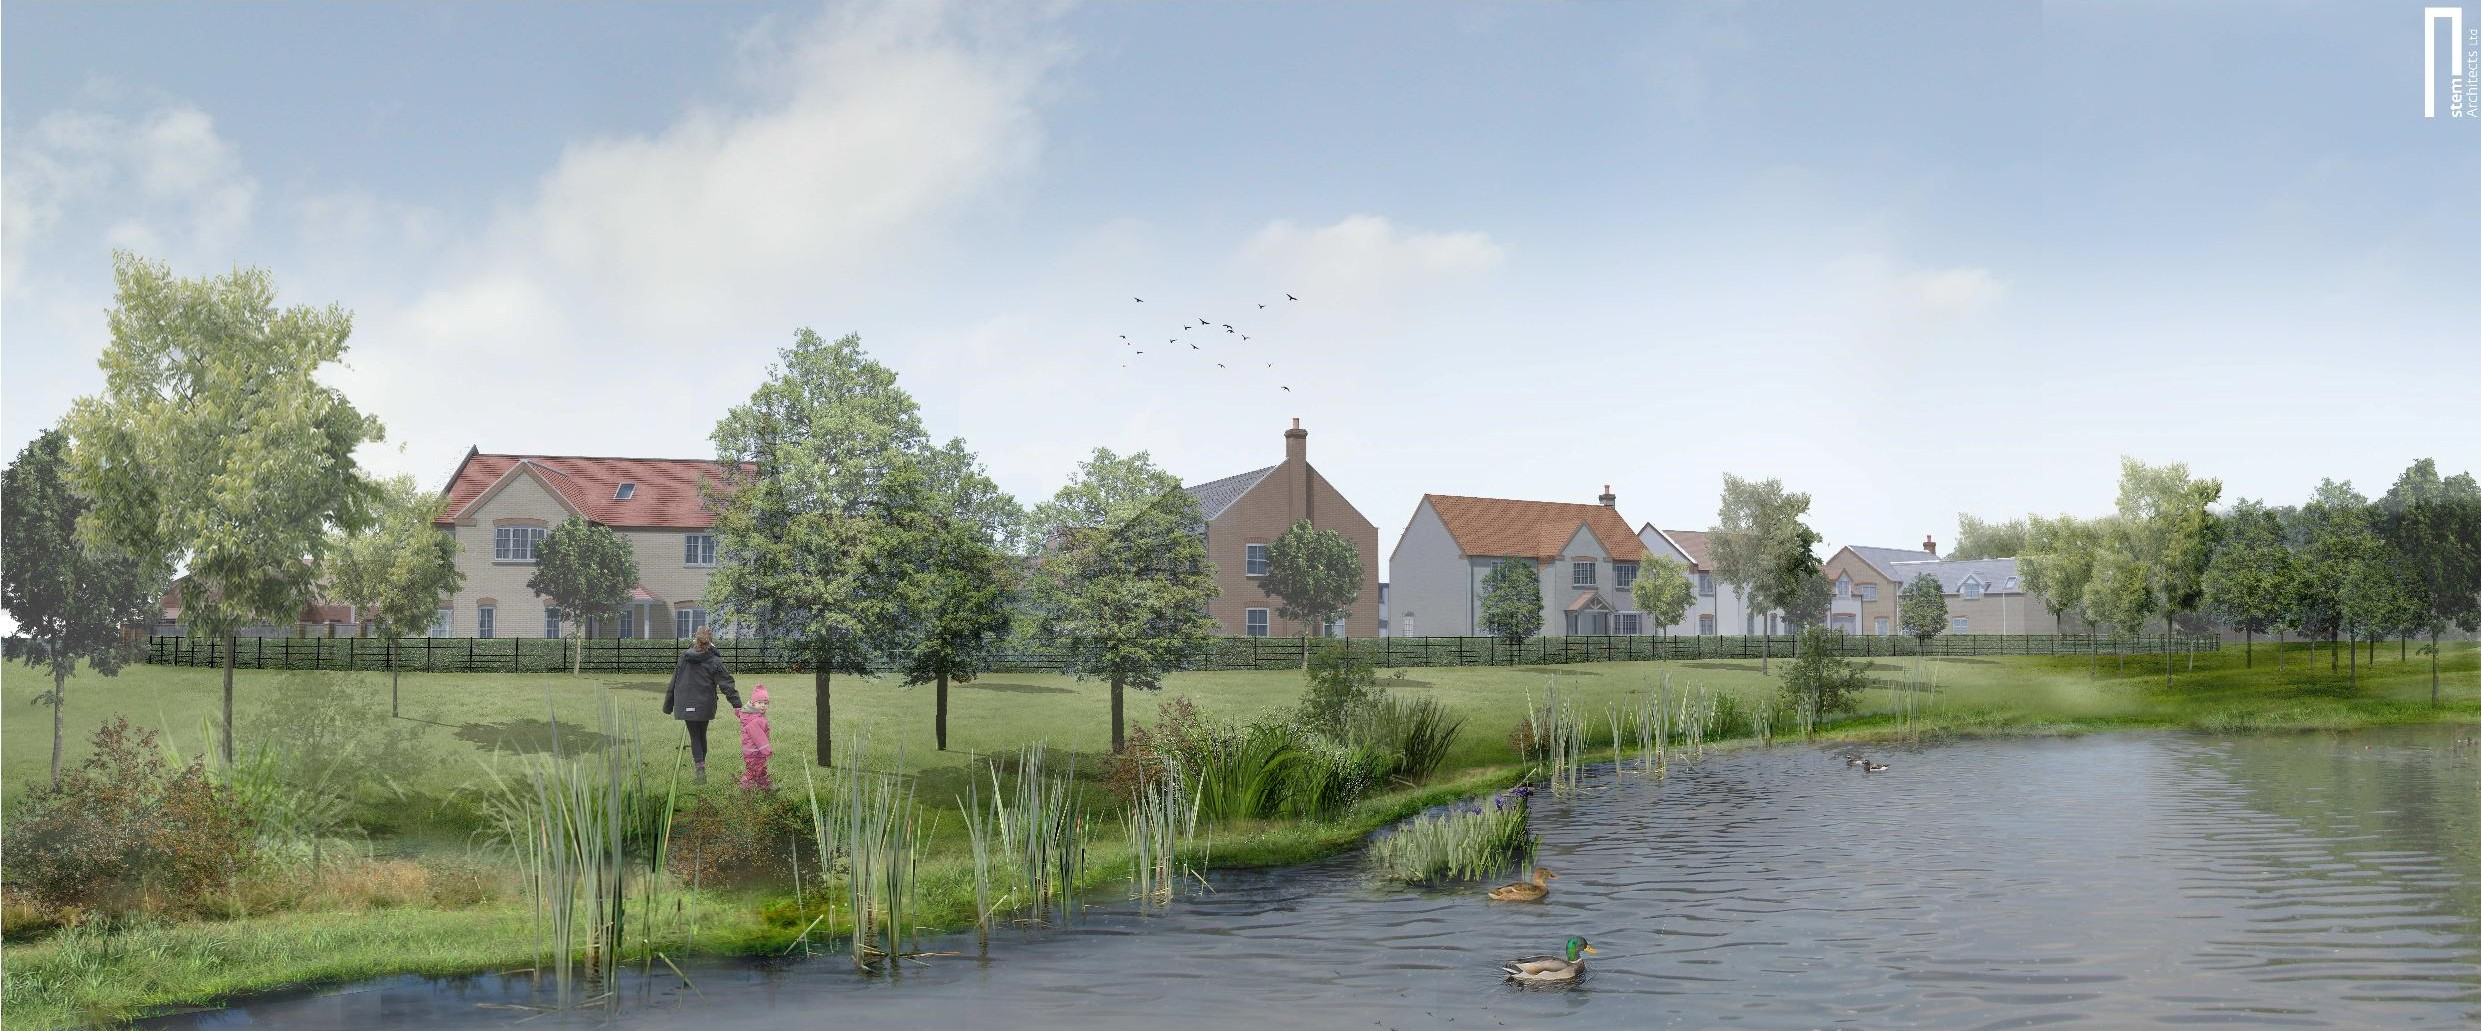 Inspired by nature and village life - The new Lincolnshire development marrying modern living with rural beauty